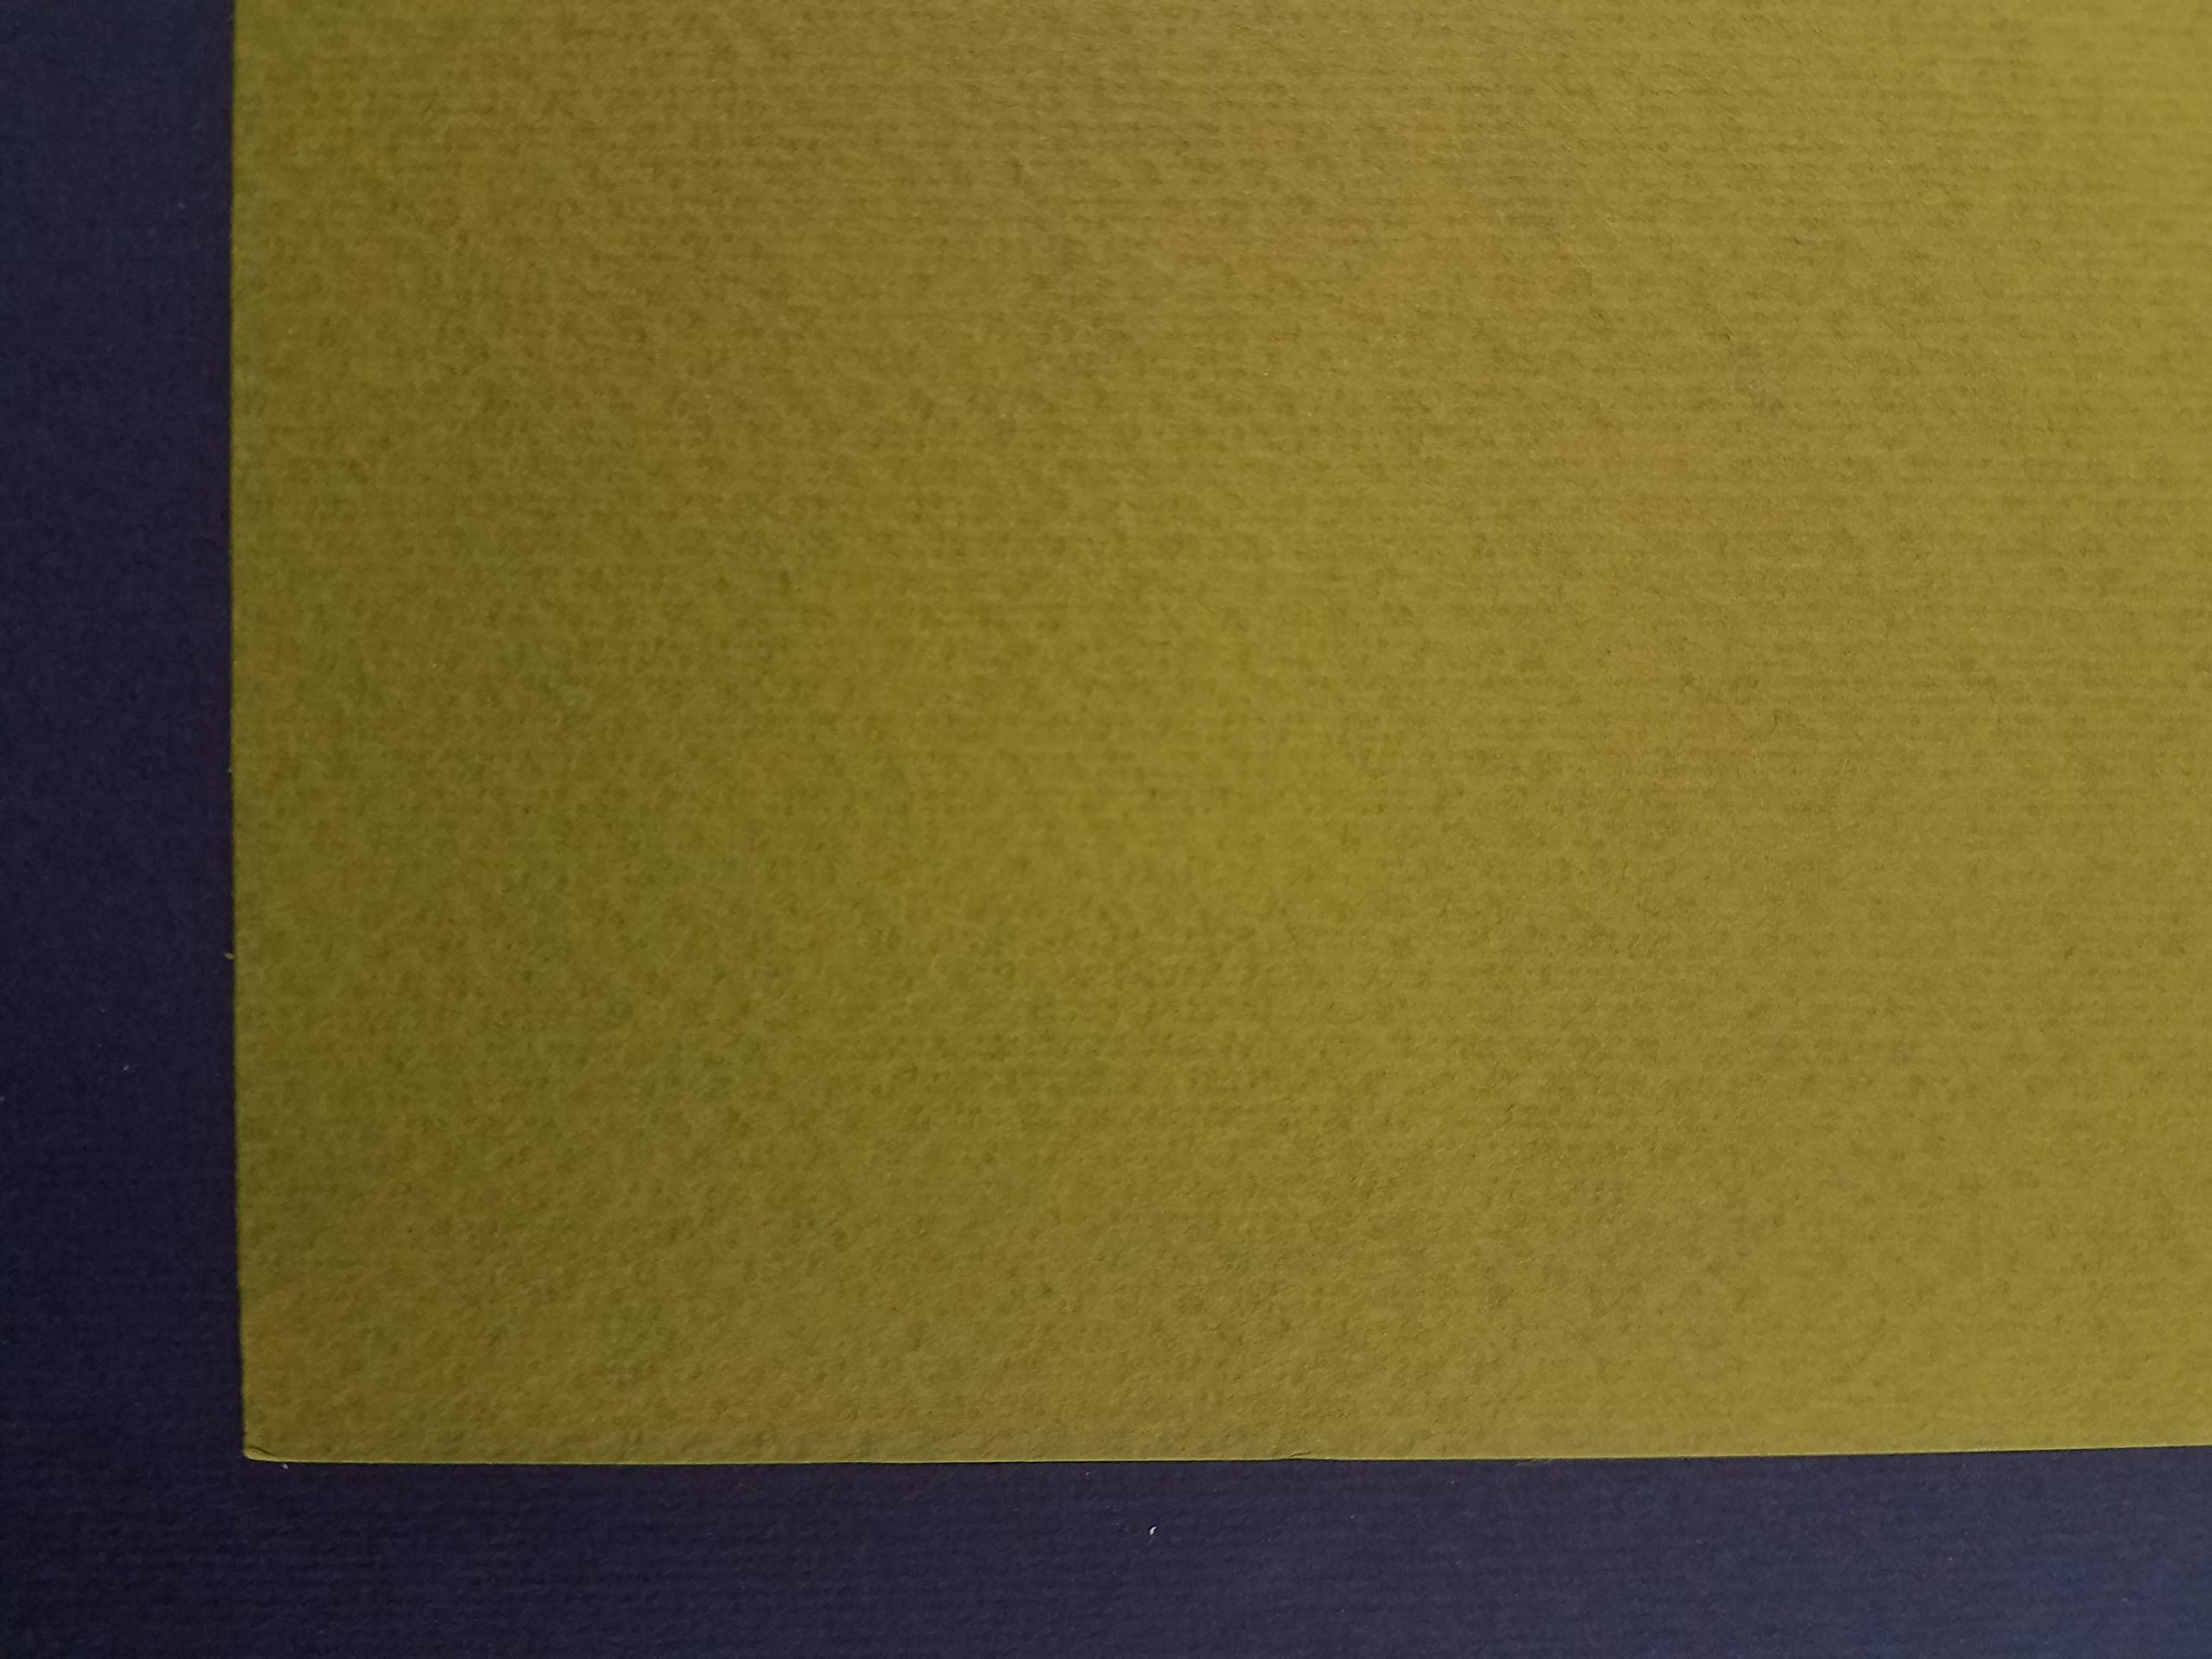 Murillo Fabriano, 27'' x 19'' - 360 GSM - Olive Green #910 (10 Sheet Package) by Murillo